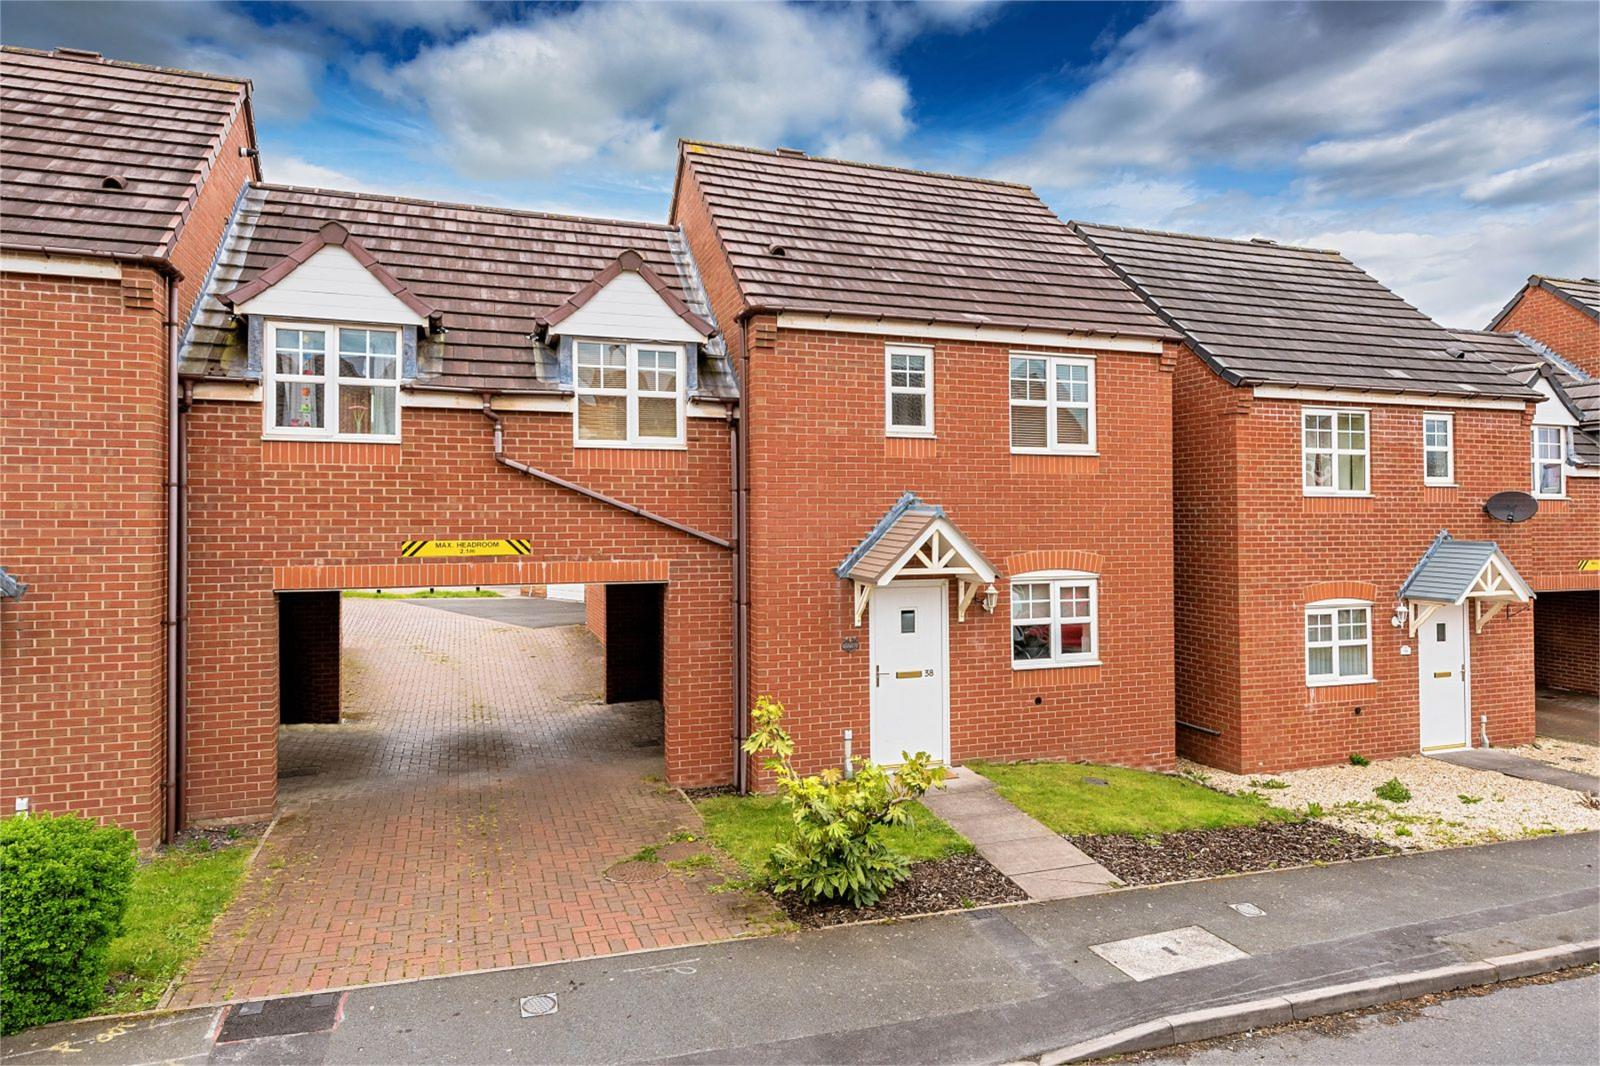 3 Bedrooms Semi Detached House for sale in 38 Marlborough Road, Hadley, Telford, Shropshire, TF1